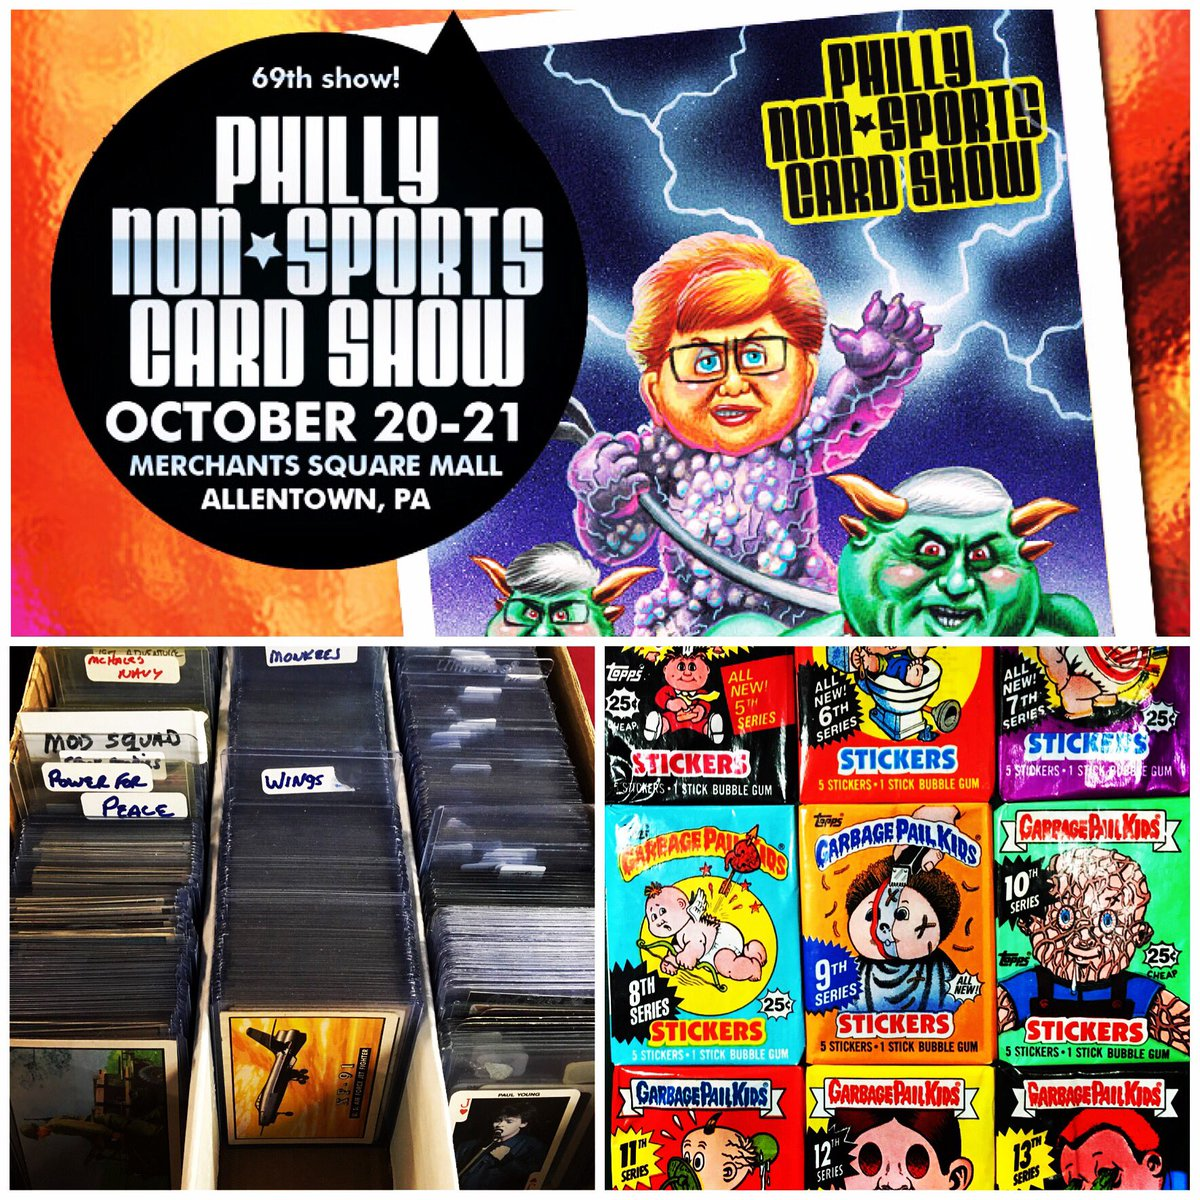 Mr Non Sport Cards On Twitter Philly Non Sports Card Show October